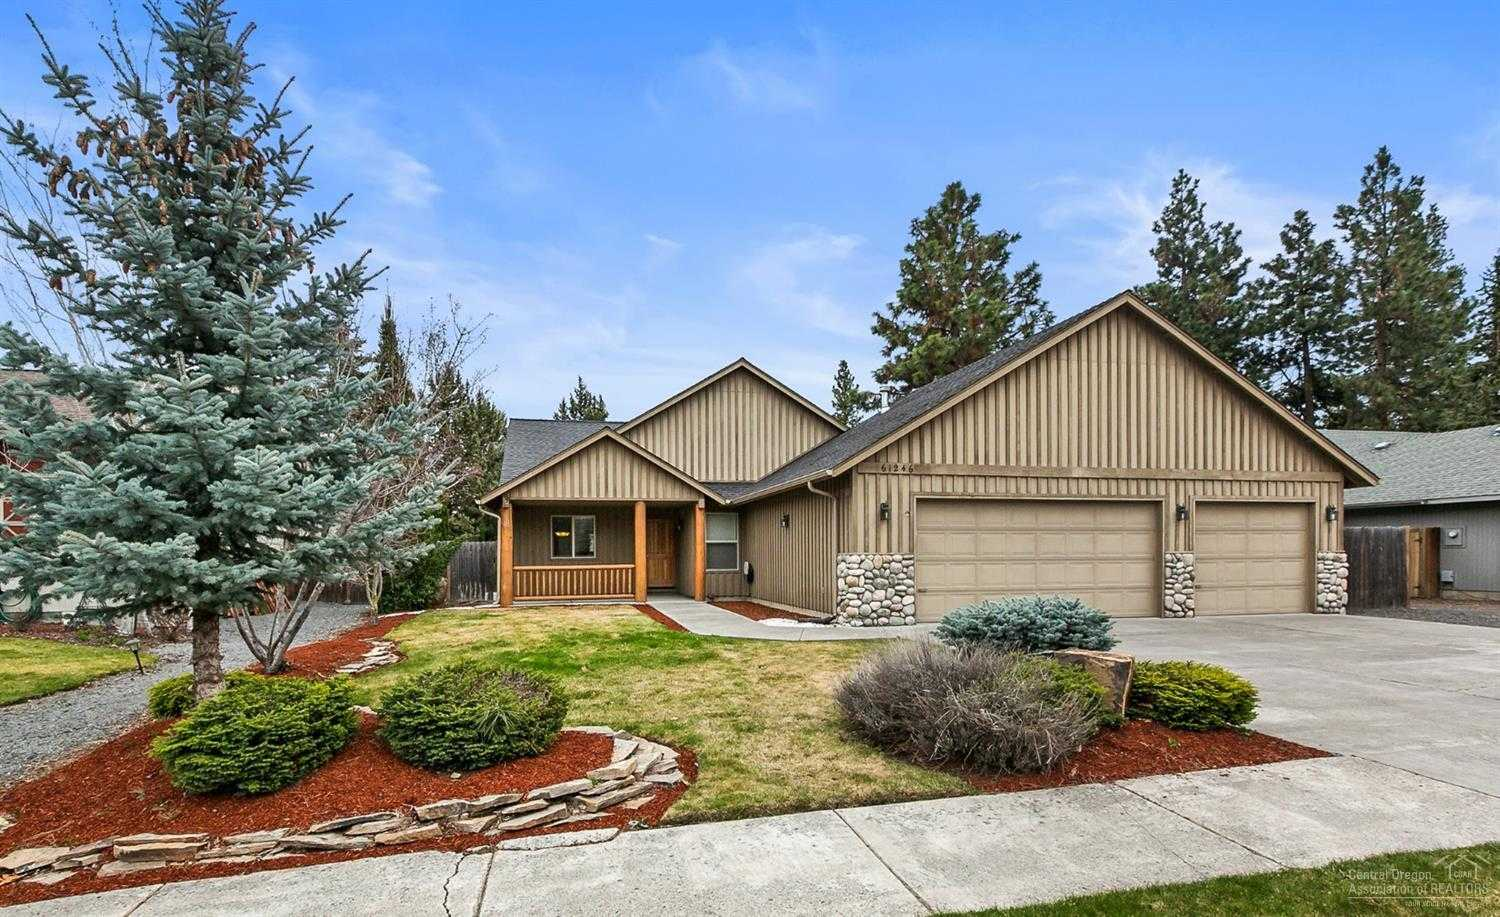 $405,000 - 3Br/2Ba -  for Sale in Bend